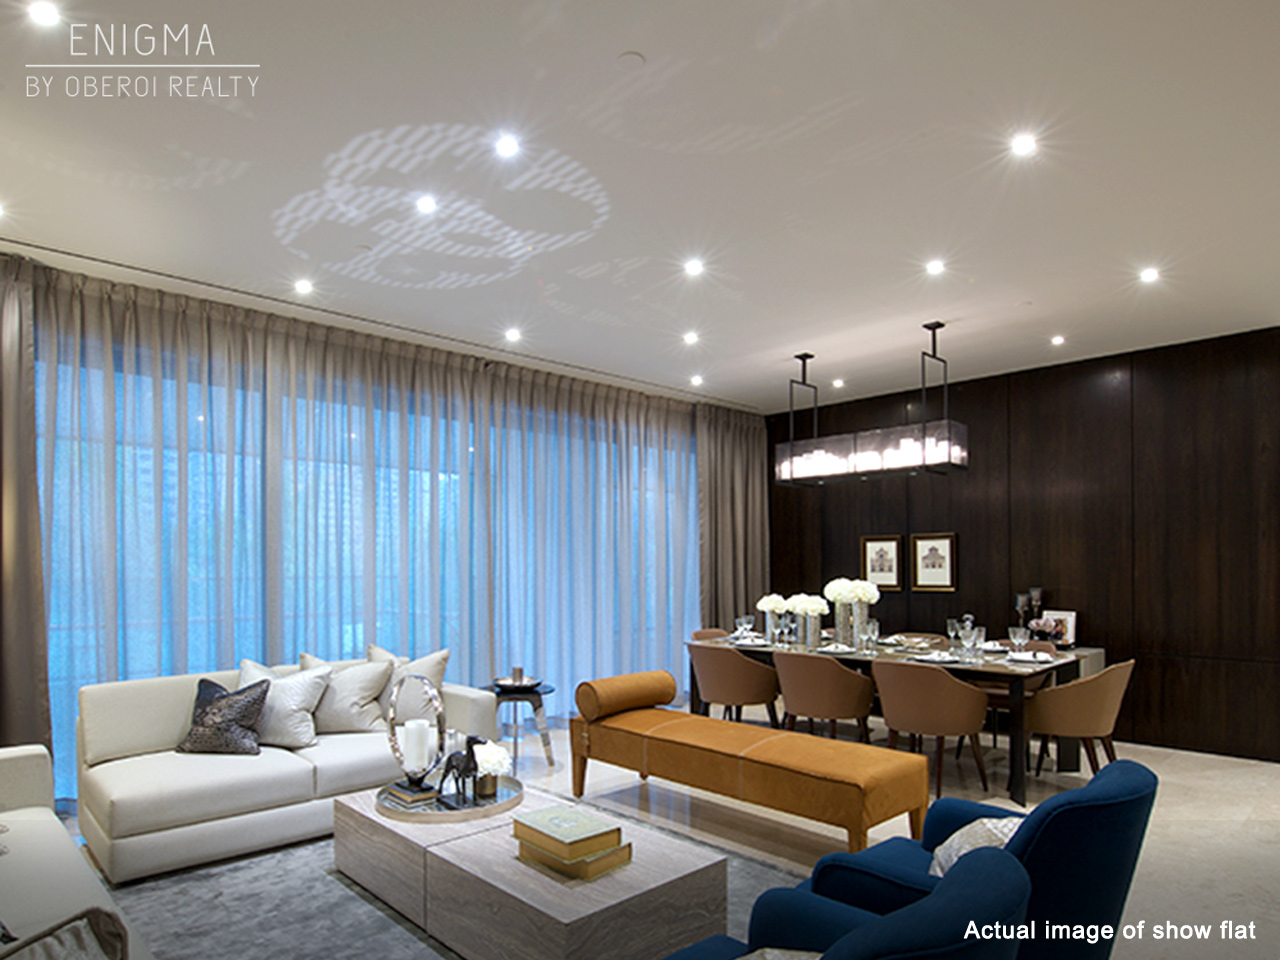 Engima By oberoi Realty